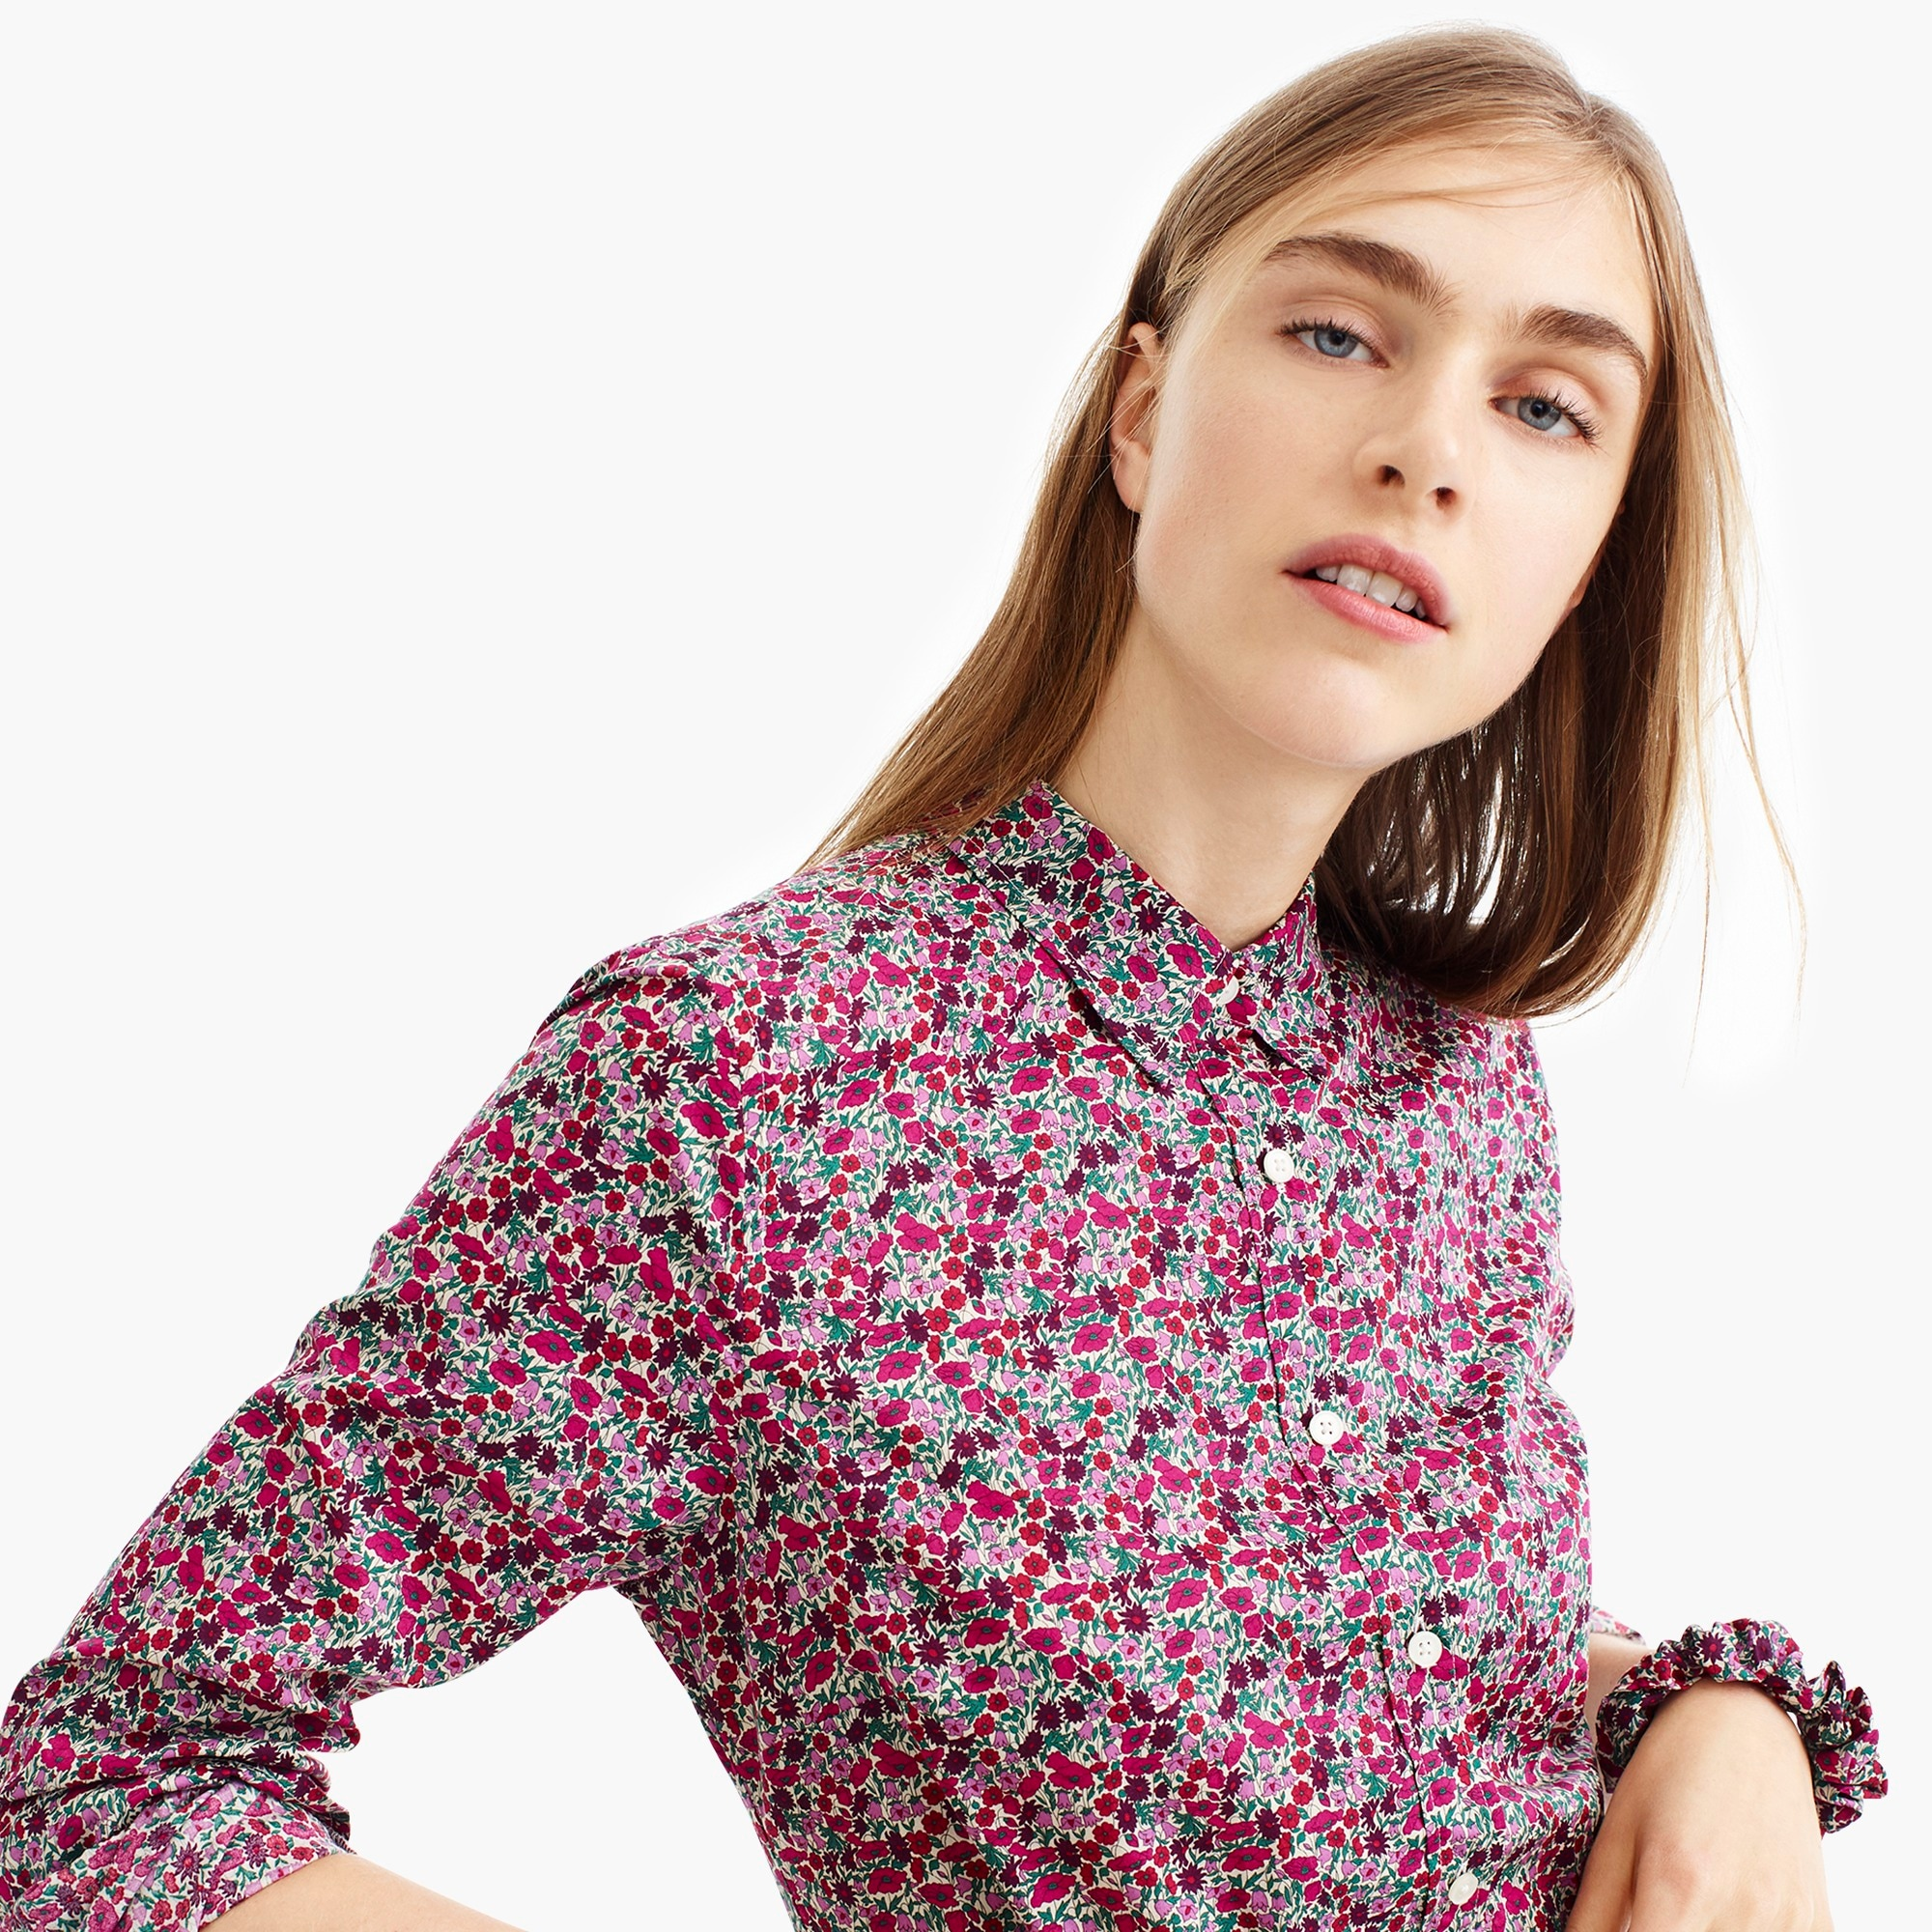 Image 2 for Slim perfect shirt in Liberty® floral